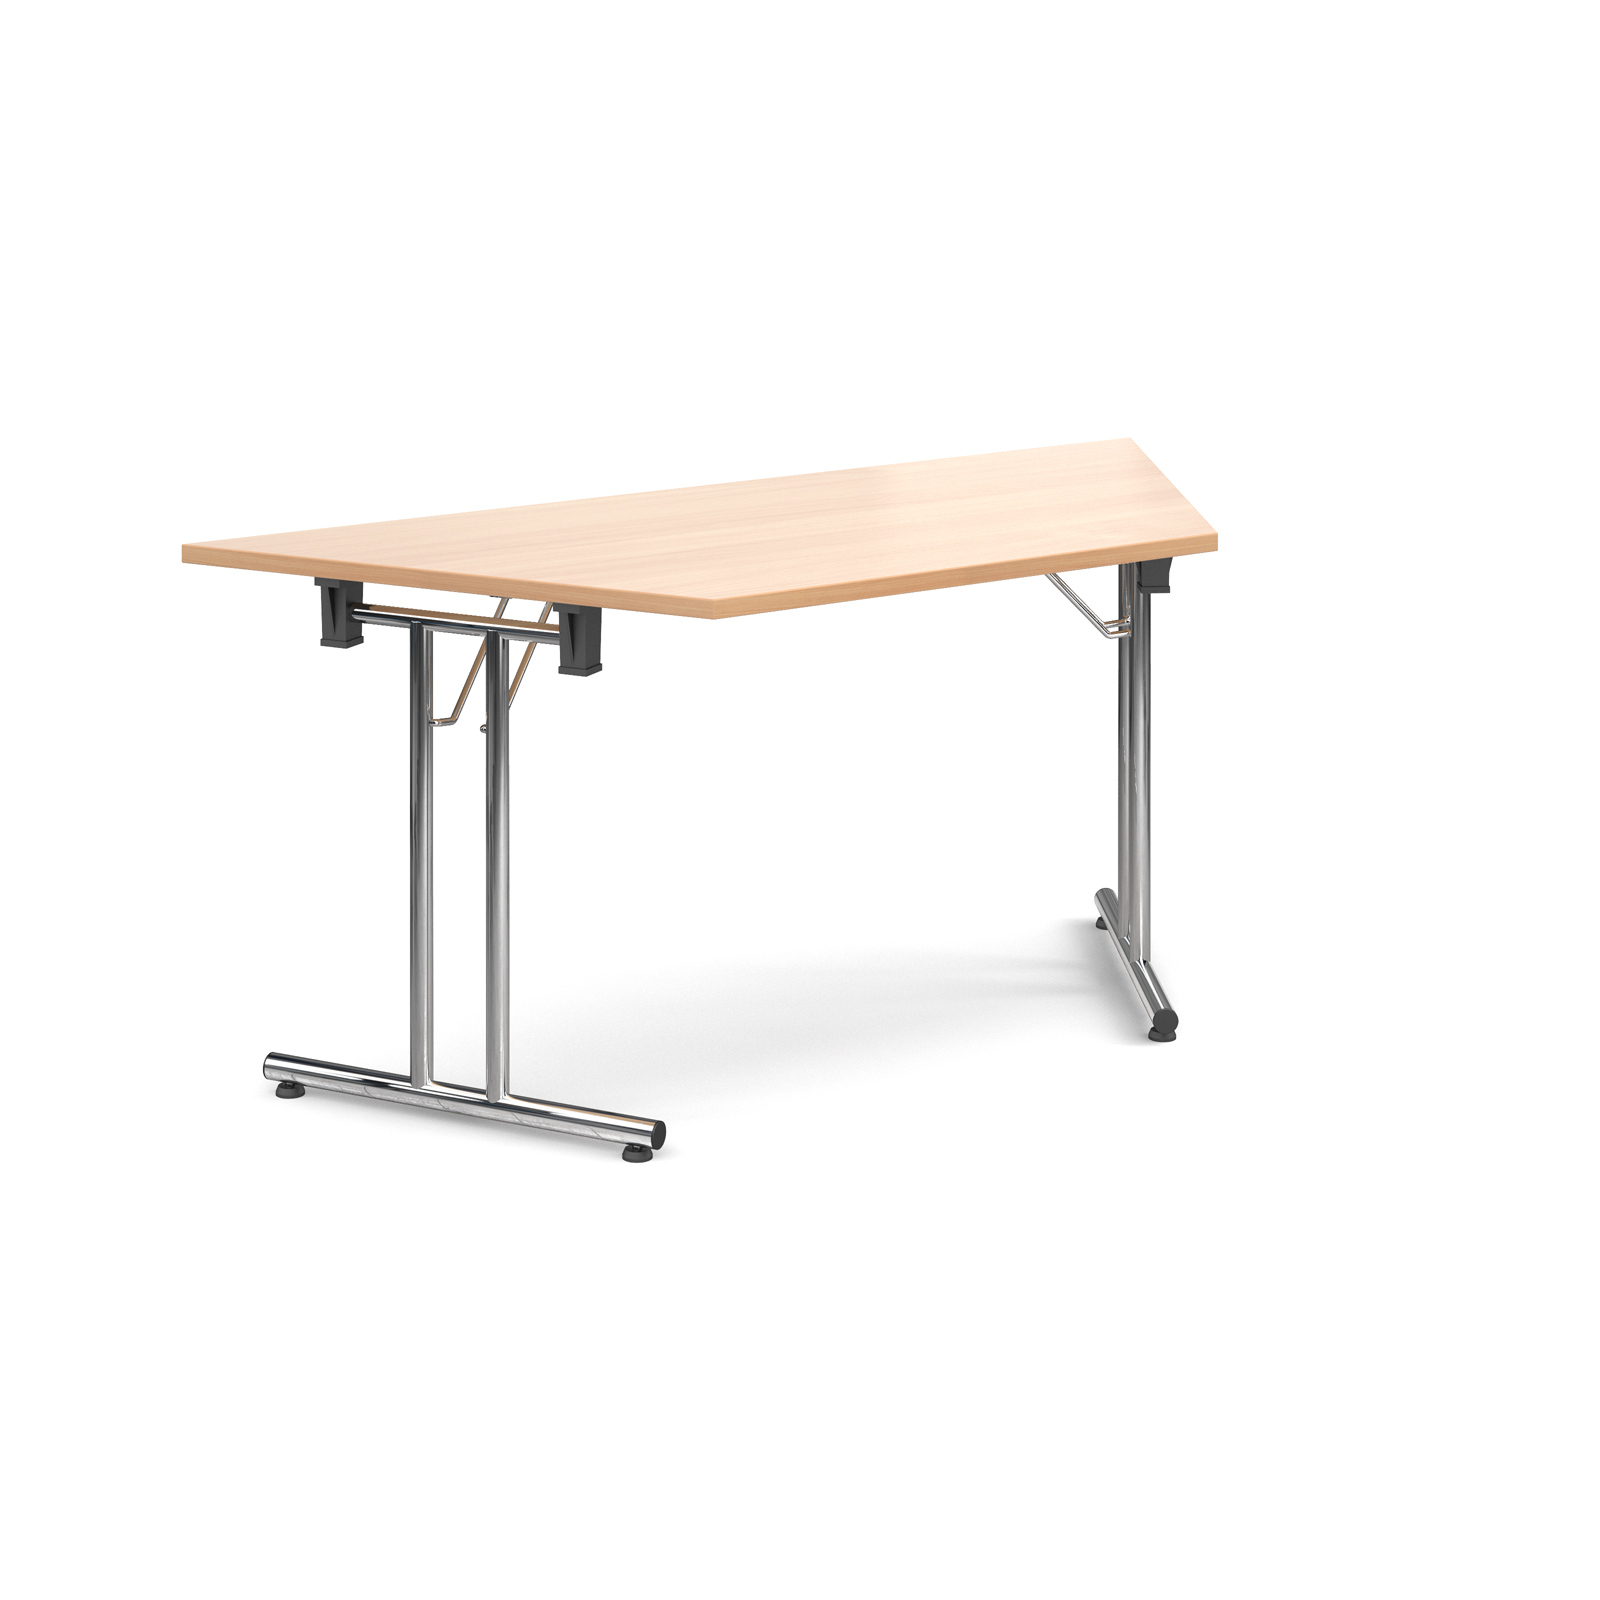 Trapezoidal deluxe folding leg table 1600mm x 800mm - beech